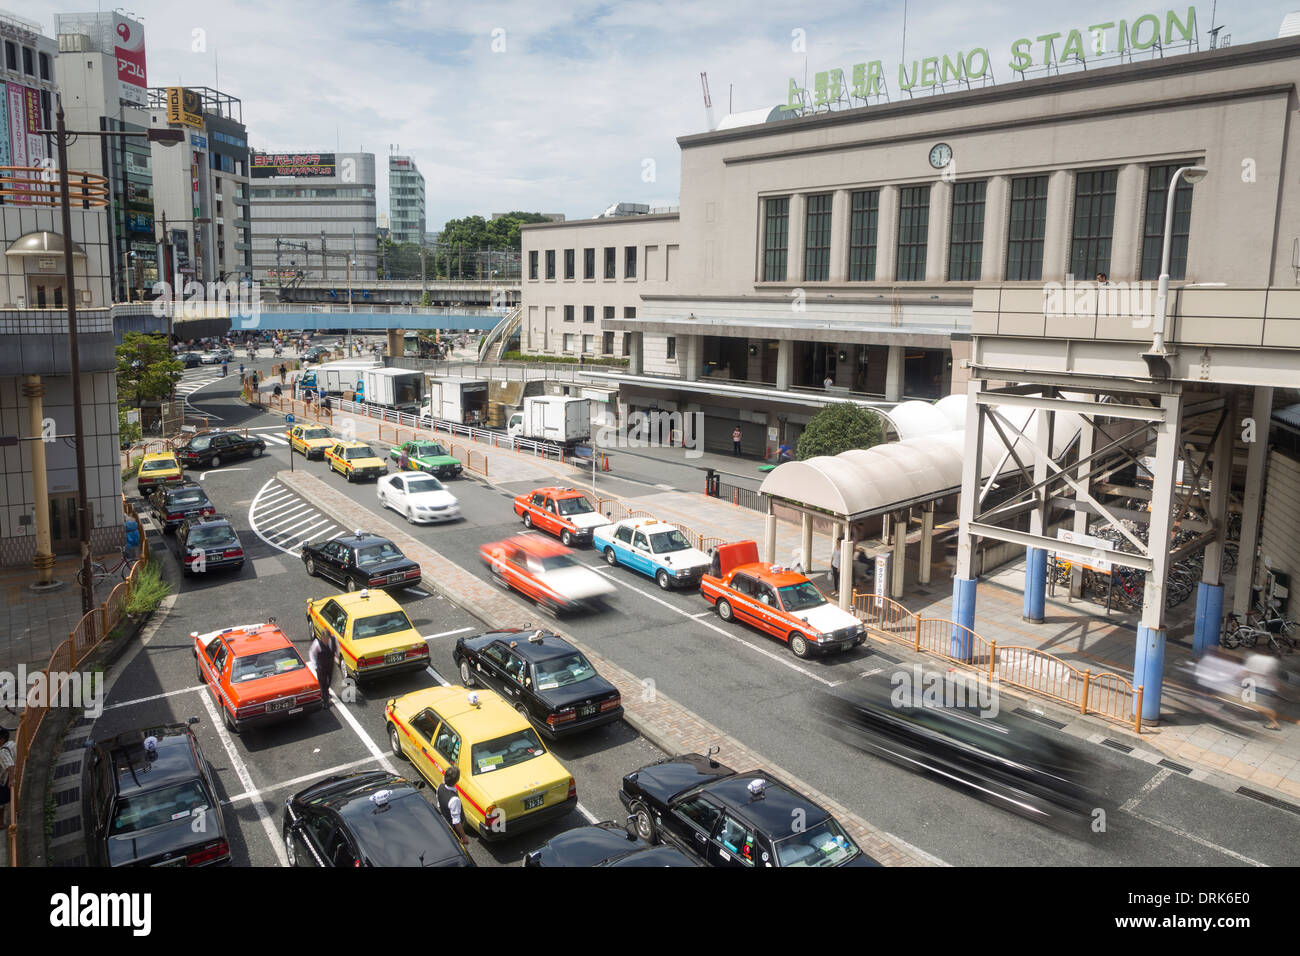 taxi-waiting-in-front-of-ueno-jr-train-s